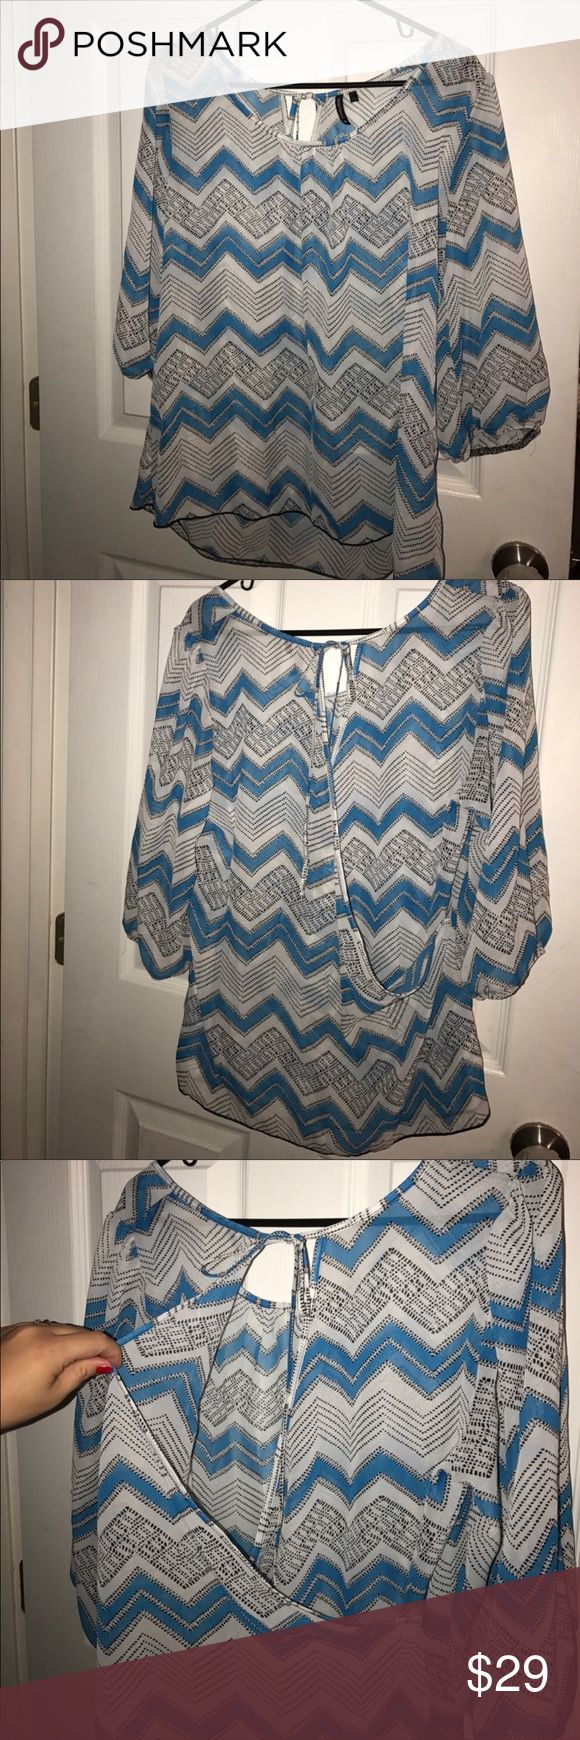 NWOT cute blue chevron top w/ back opening XL NWOT cute blue chevron top blouse with back opening. Size XL. Women's Ladies Fashion. Check out my closet, we have a variety of women's, Victoria Secret, handbags 👜 purse 👛 Aerosoles, shoes 👠fashion jewelry, necklace, clothing, dress, Beauty, home 🏡 .  Ships via USPS. Smoke & Pet-Free. Offers 30% OFF bundle discount. Always a FREE GIFT 🎁 with every purchase!!! Thank you. Tops Blouses